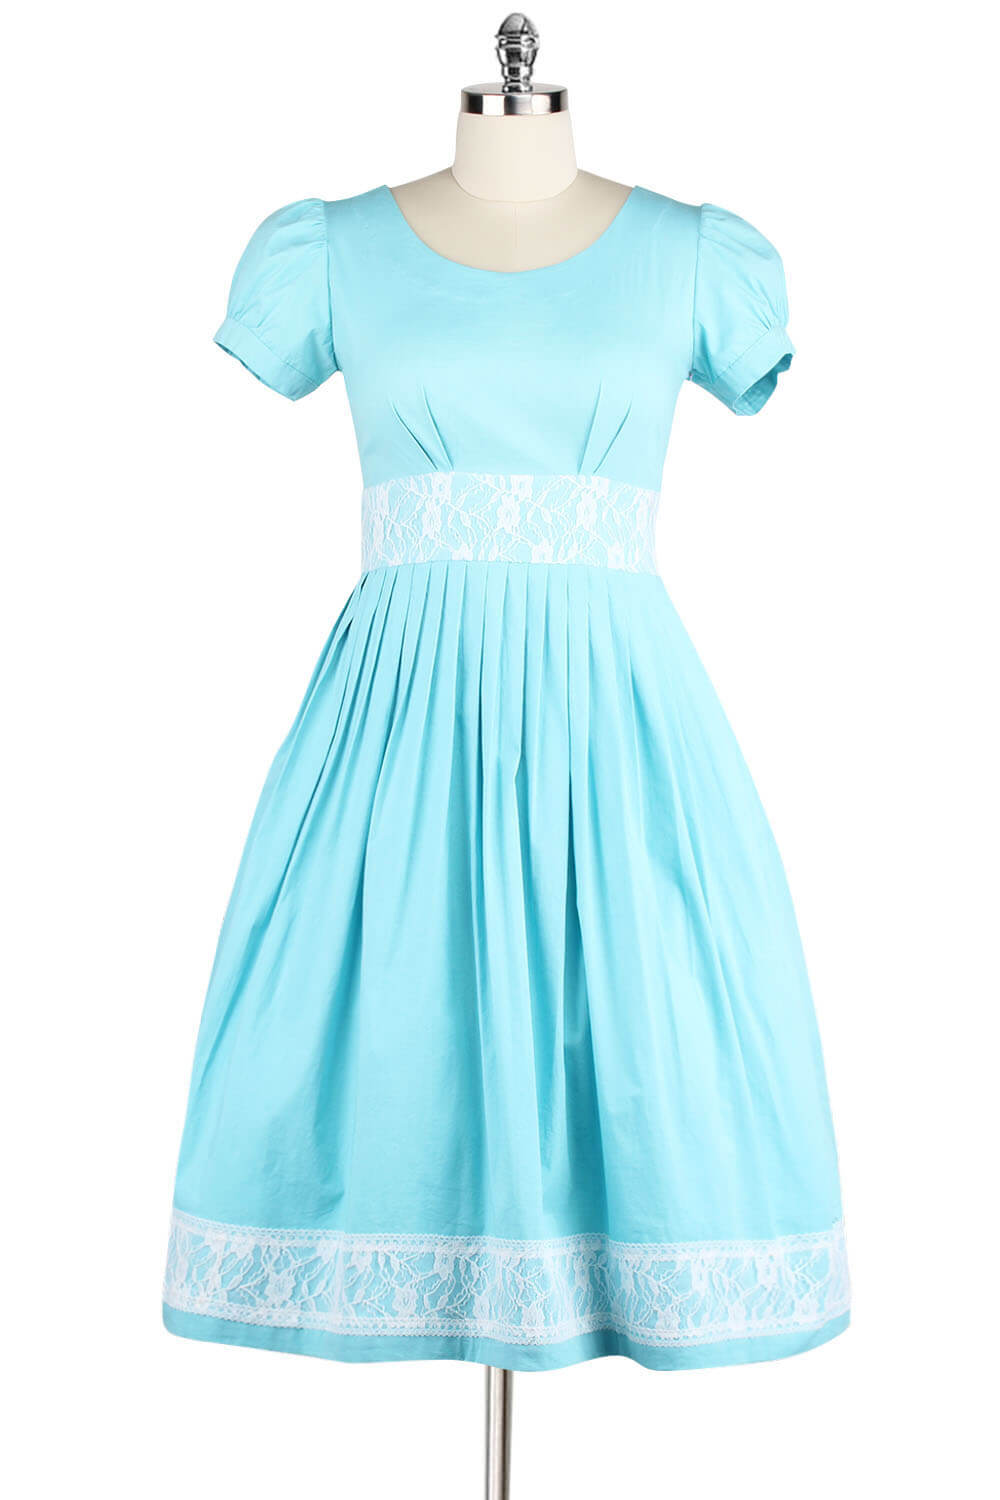 1950s Style Round Neck Cotton Flare Dress